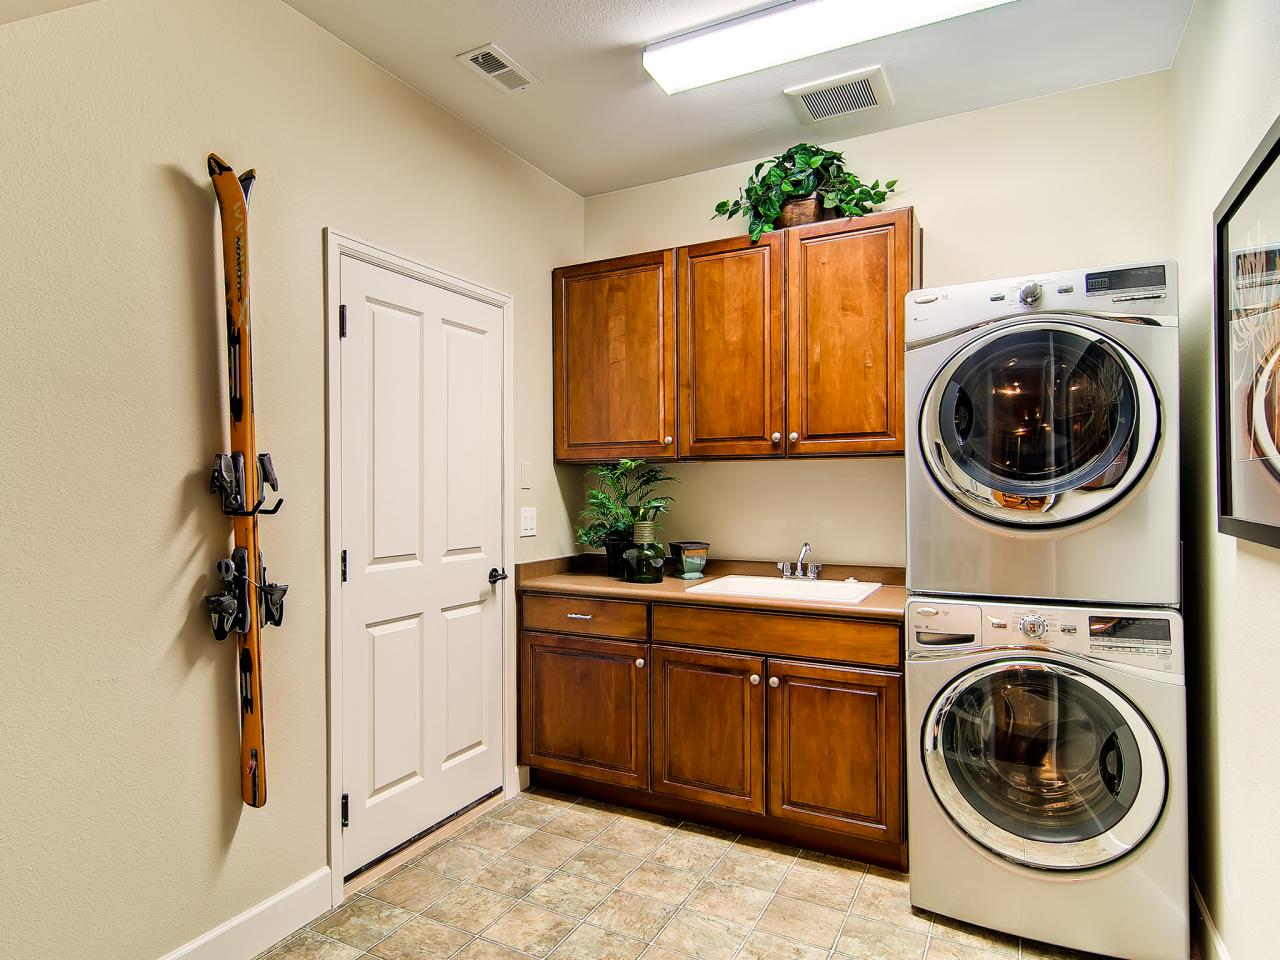 Modern laundry room designs pictures options tips for 8x6 bathroom ideas